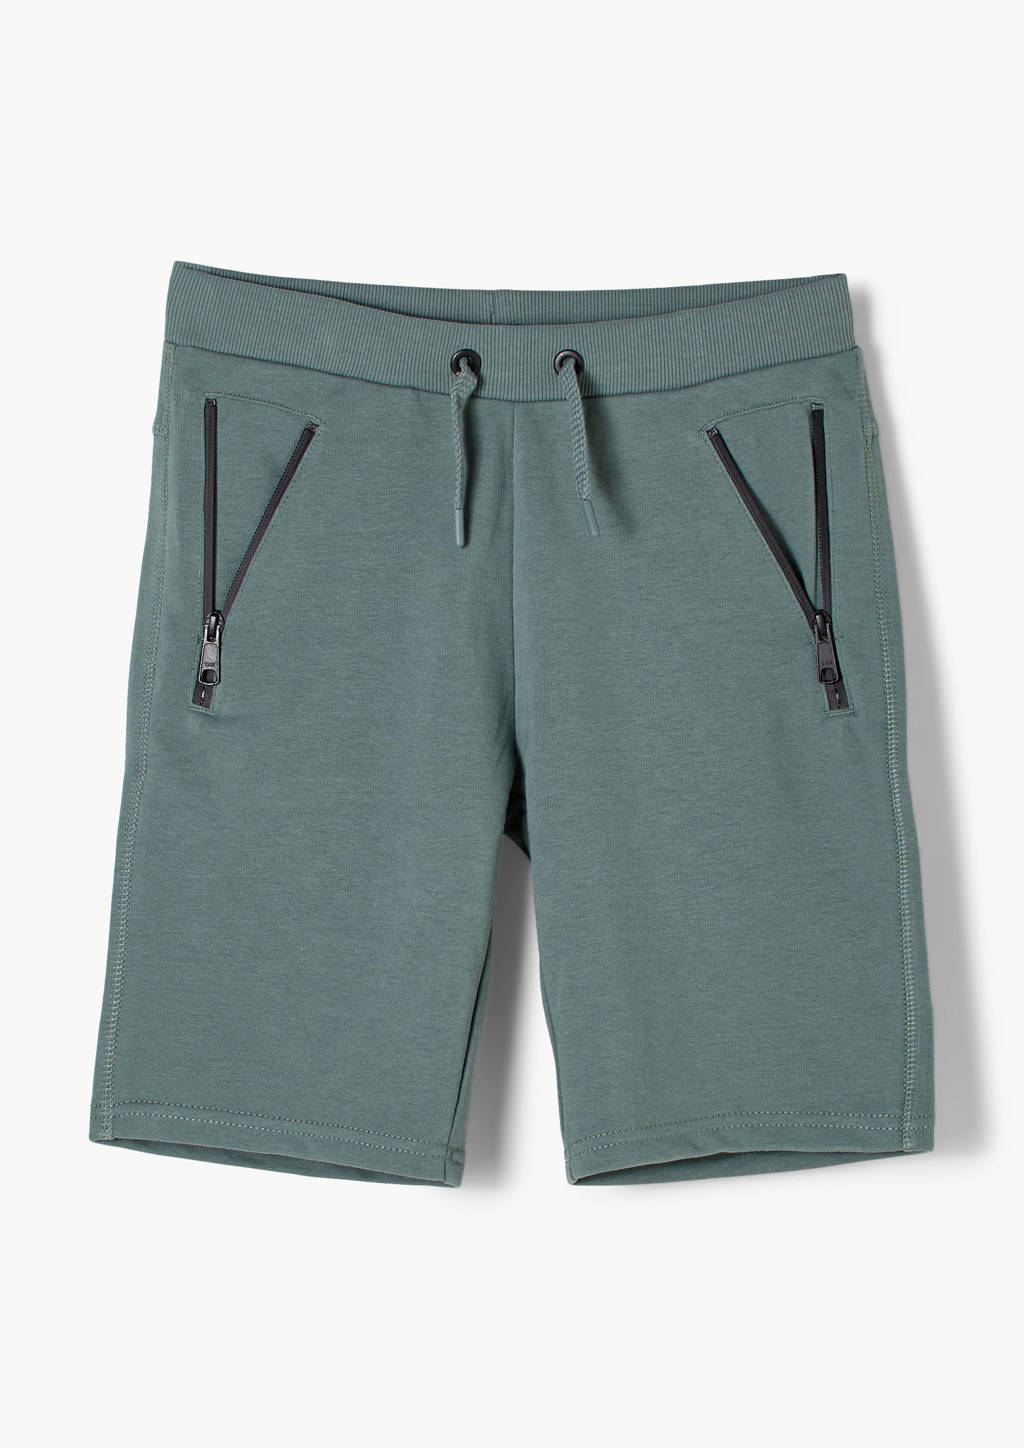 s.Oliver regular fit sweatshort groen, Groen